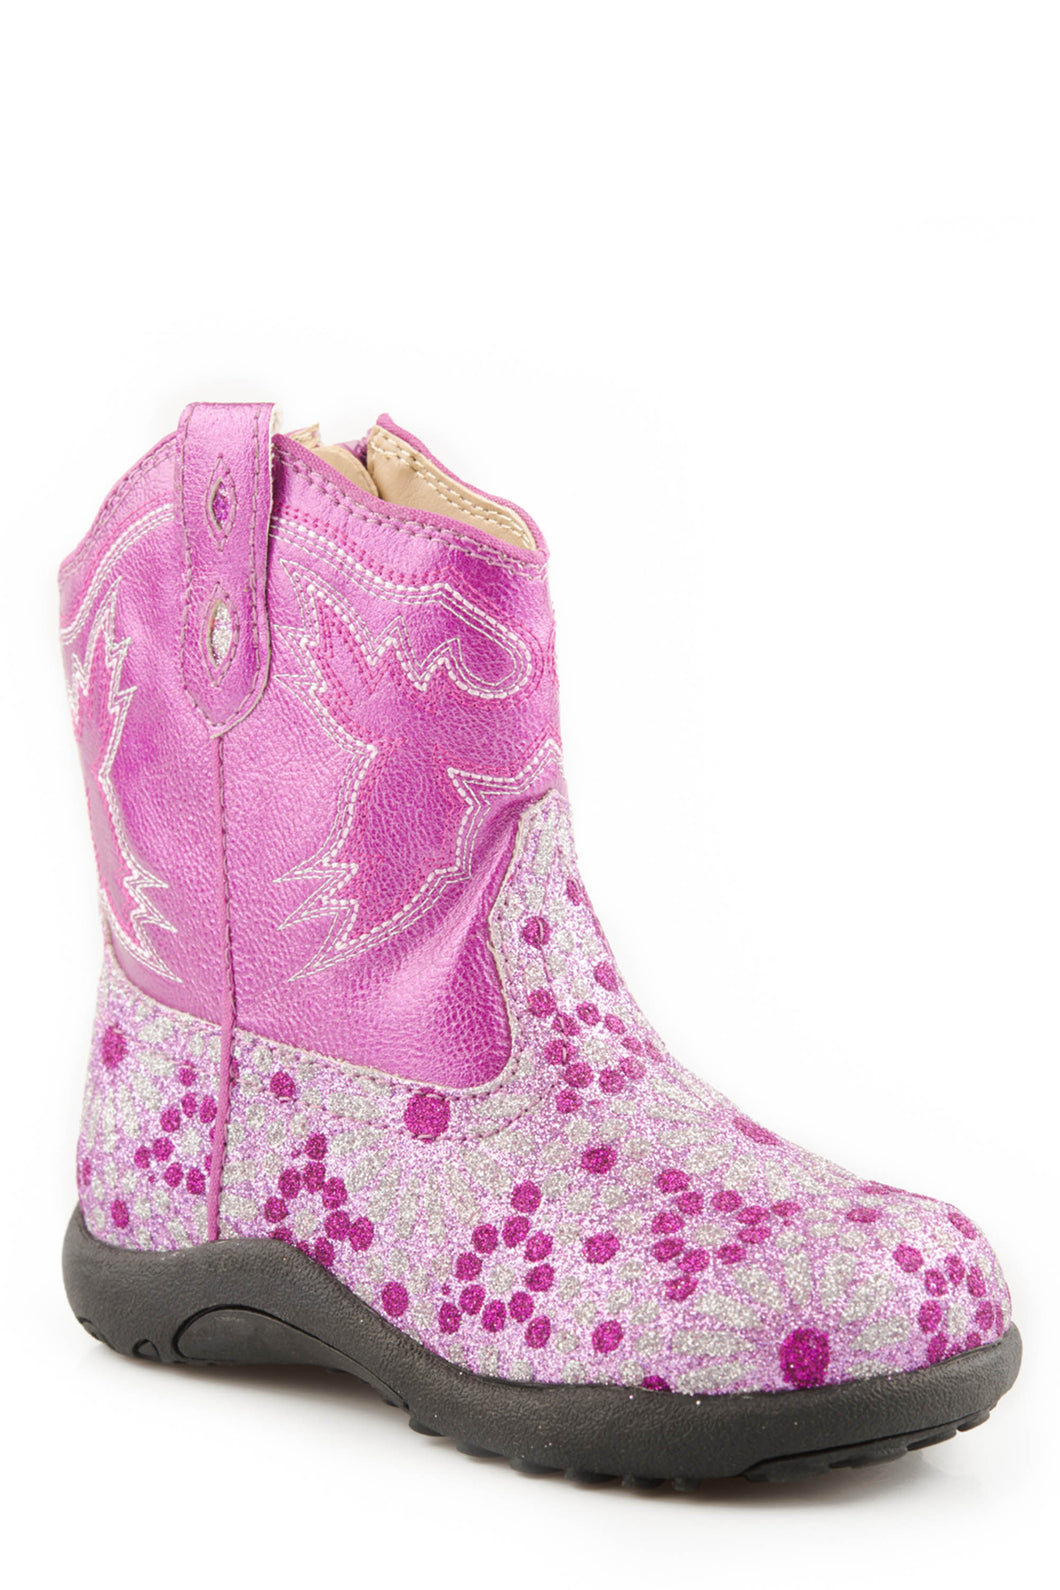 Glitter Flower Power Boot Infant Boots Chunk 2 Faux Leather Shaft With Pink